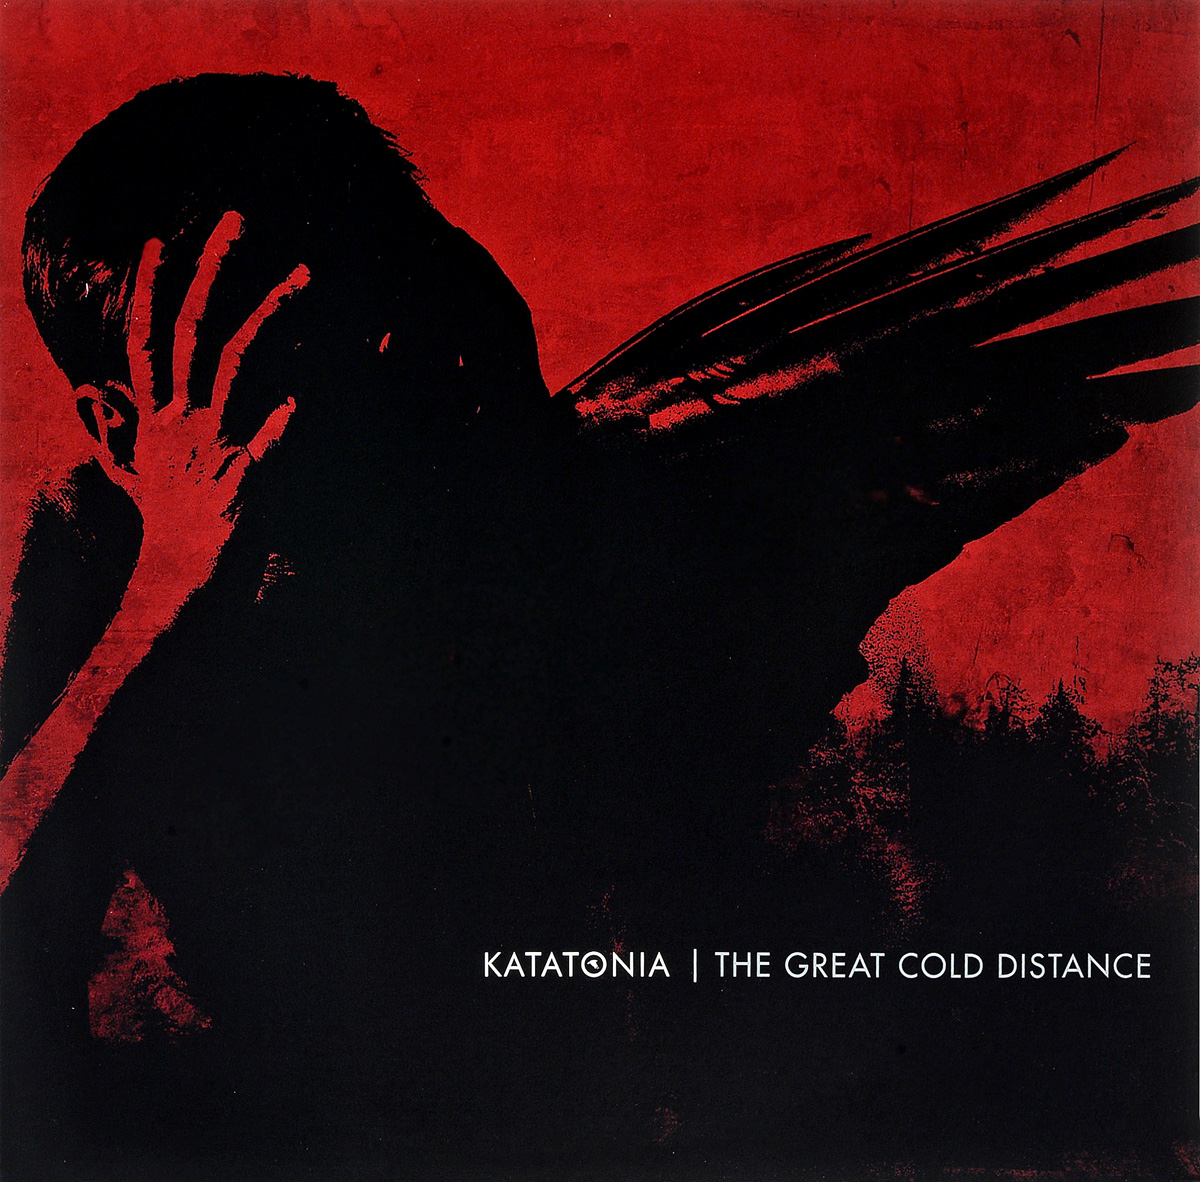 Katatonia Katatonia. The Great Cold Distance (10th Anniversary Coloured Vinyl Edition) (2 LP) scorpions – tokyo tapes 50th anniversary deluxe edition 2 lp 2 cd